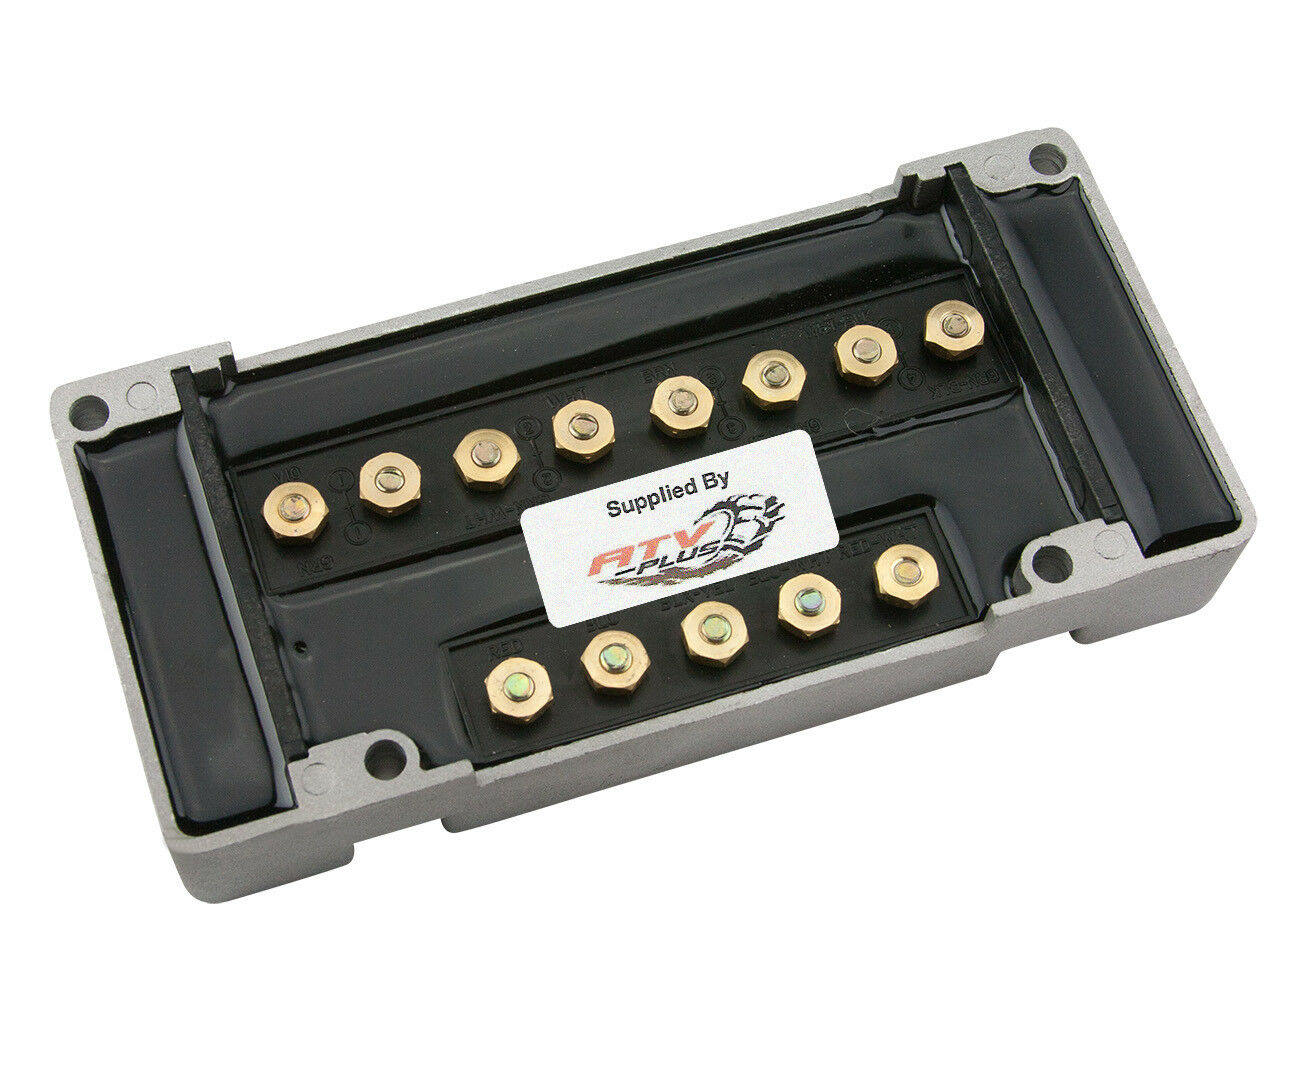 MERCURY OUTBOARD CDI Switch Box Power Pack MANY 4-Cylinder 2-Stroke ...